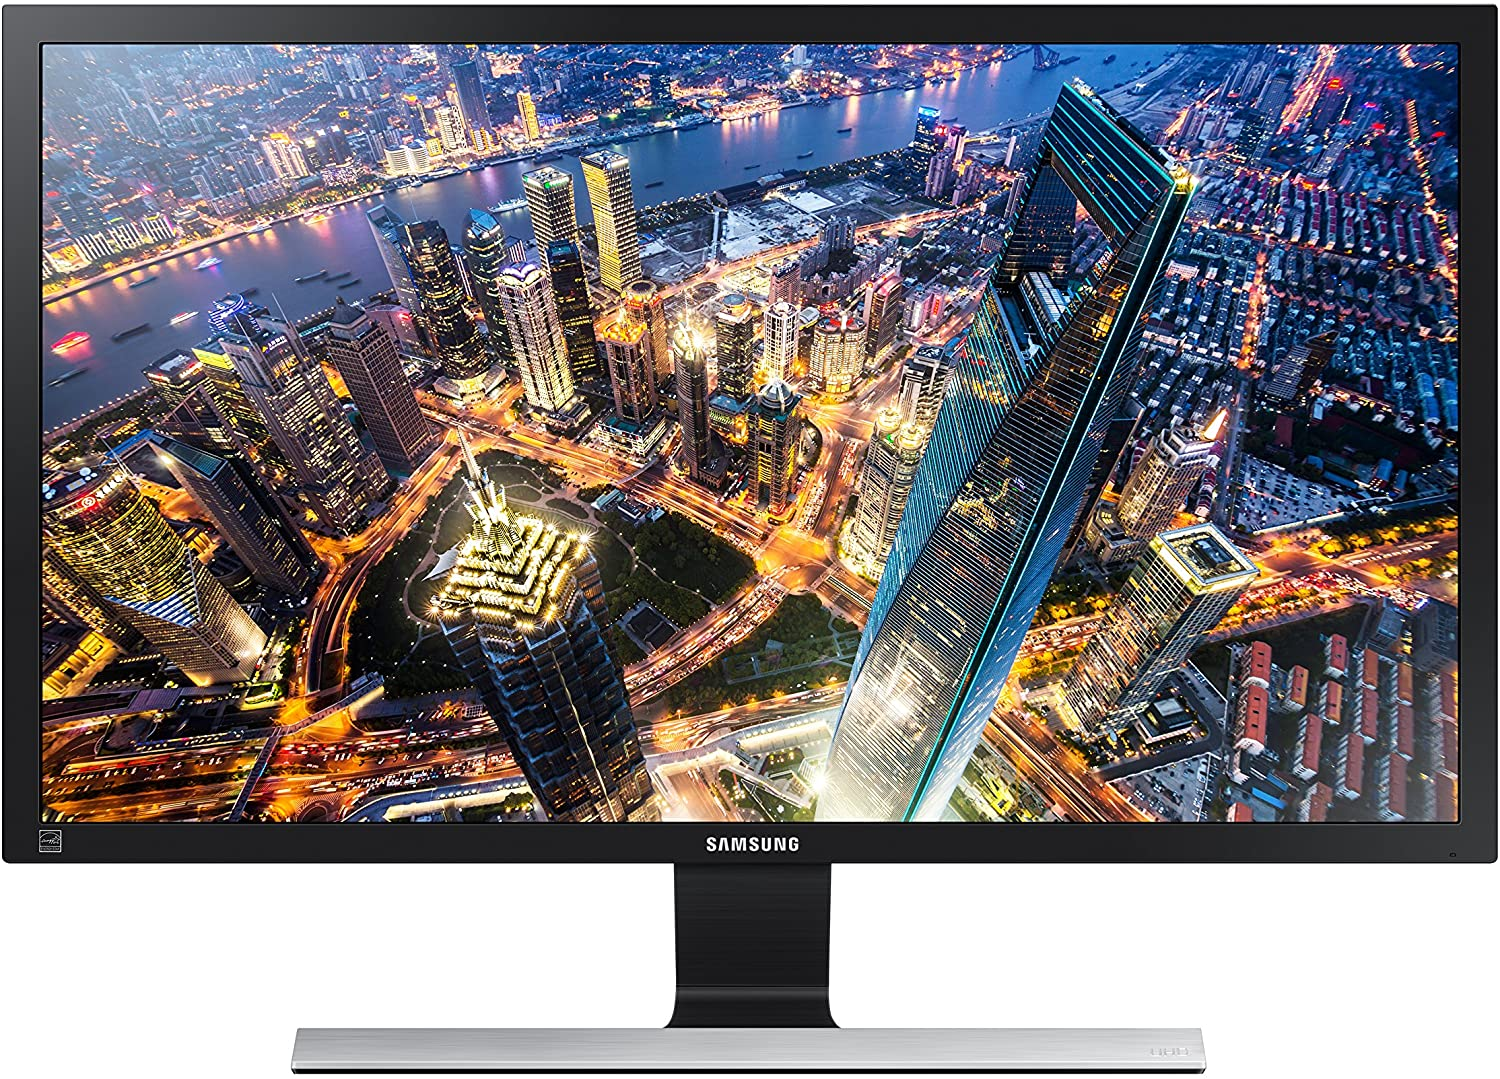 4K UltraHD Samsung UE570 60hz Gaming Monitor with FreeSync Technology is now $323